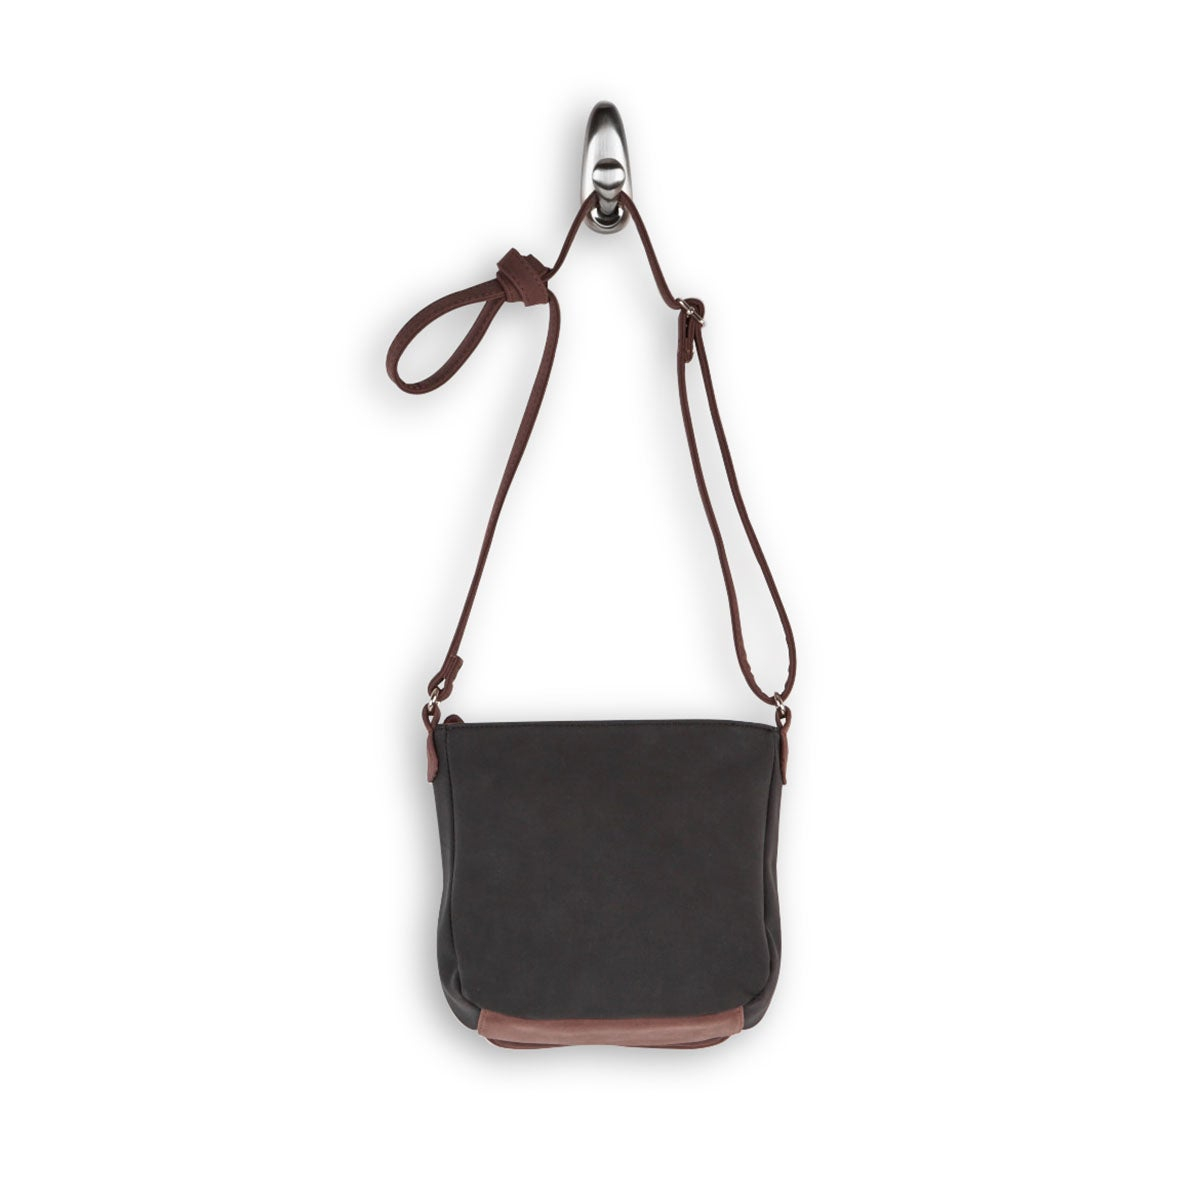 Lds Prime Mini black/coffee cross body